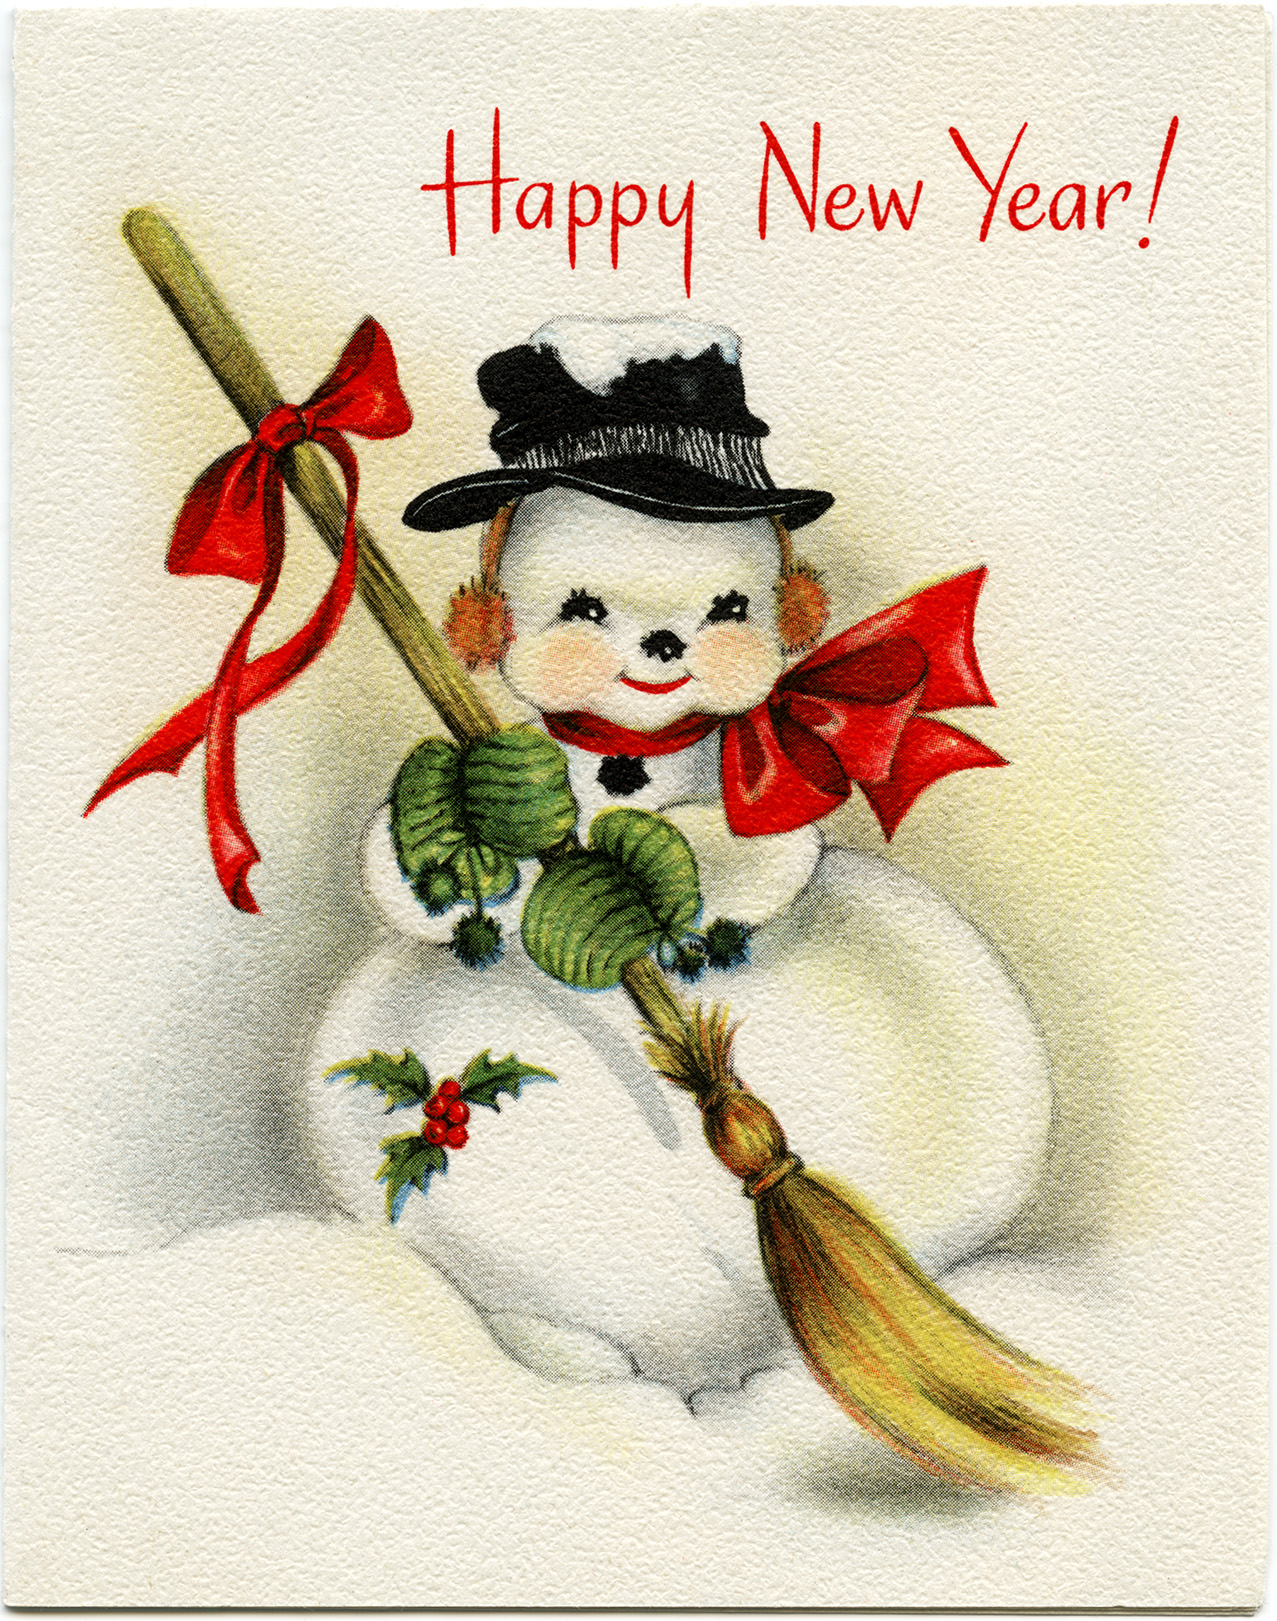 Free clipart happy new year greeting svg library stock Vintage Snowman New Year Greeting Card - Old Design Shop Blog svg library stock